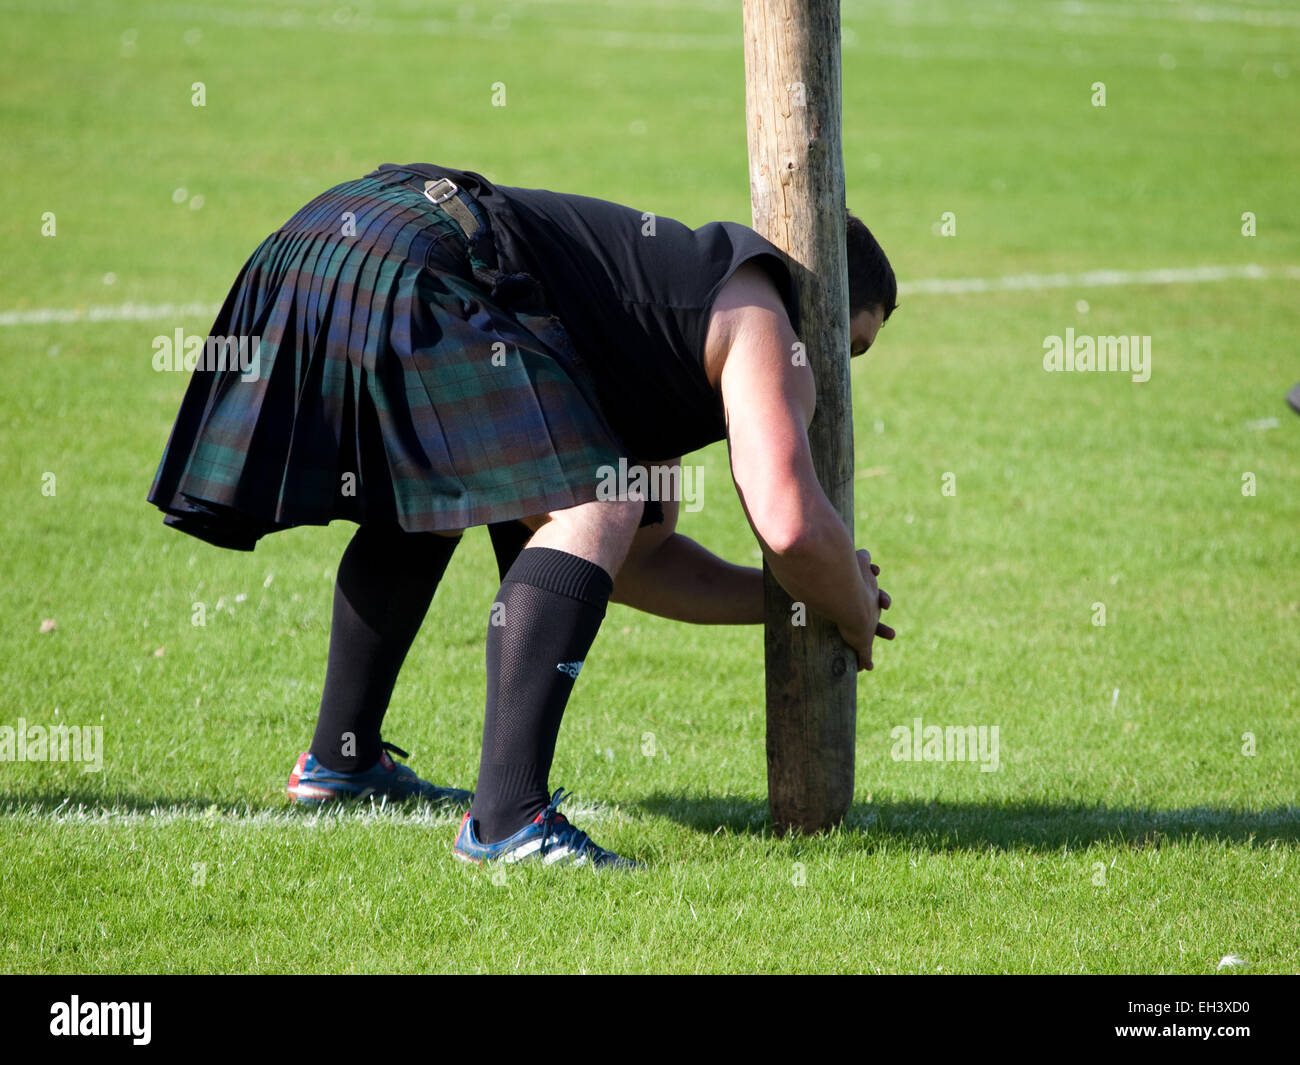 Nairn, Scotland - August 20, 2011: A competitor at the Highland Games preparing to perform a caber toss. - Stock Image